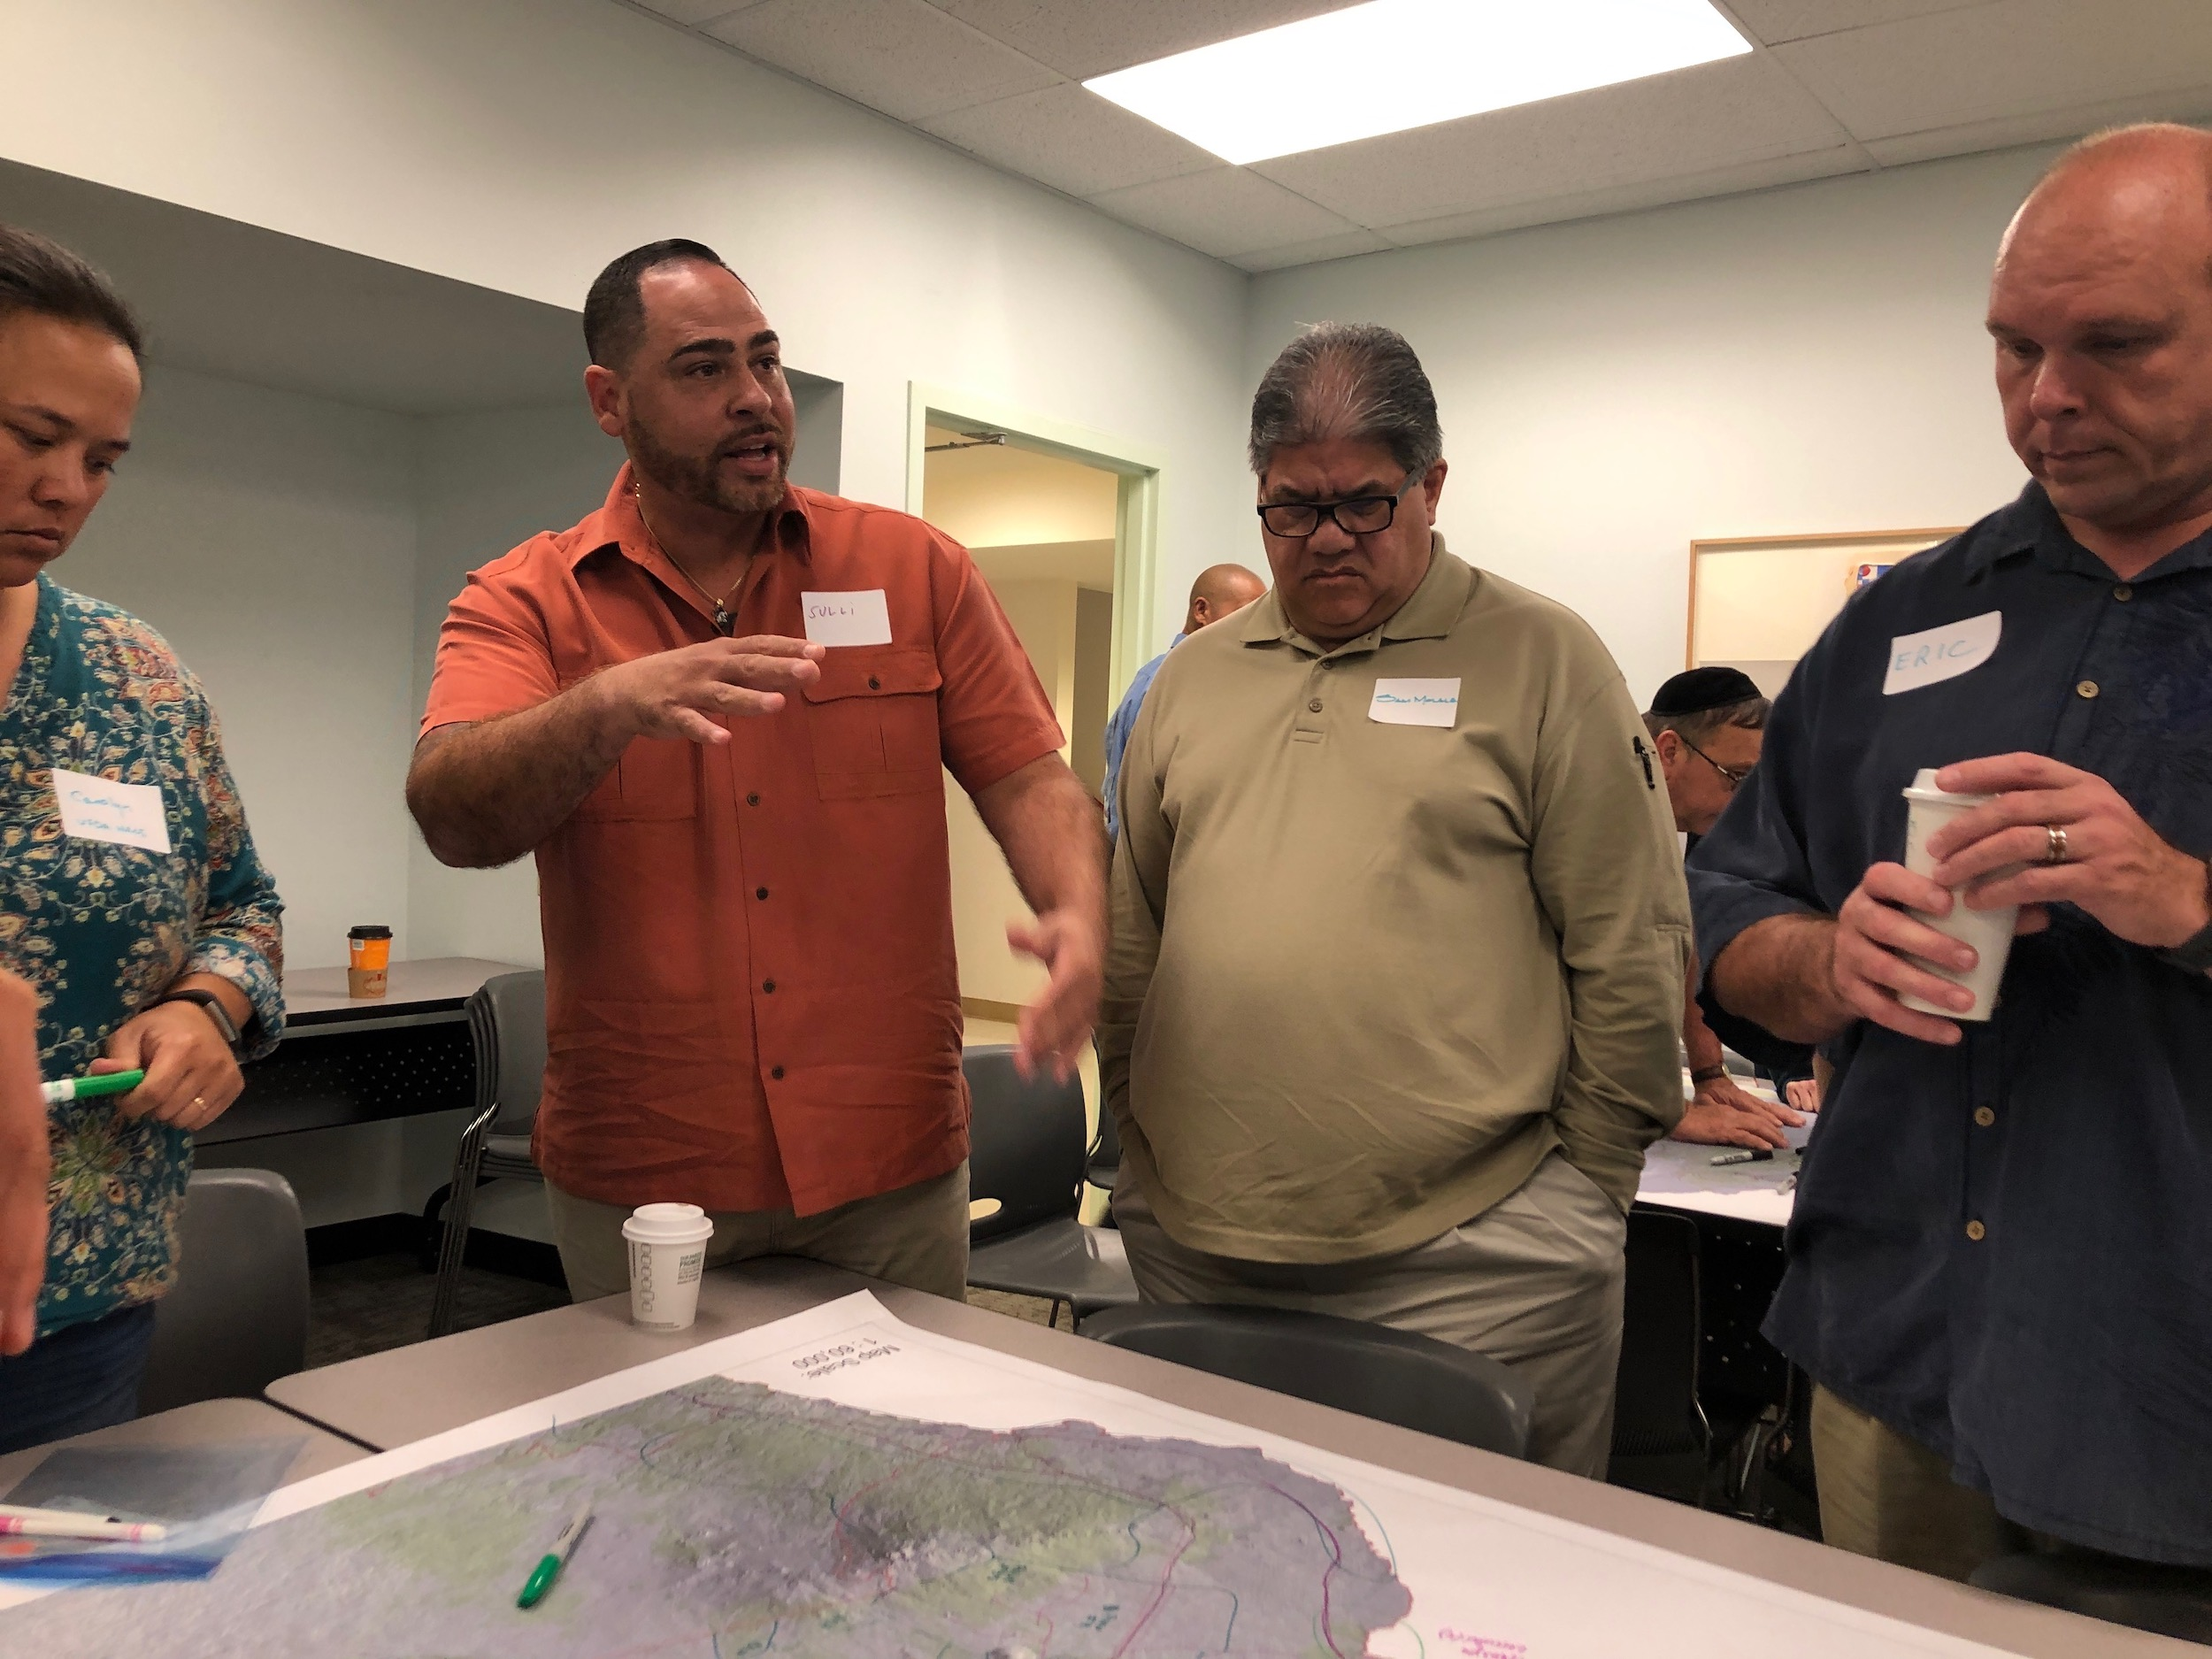 Hawaii Island Hilo Vegetative Fuels Management Collaborative Action Planning Workshop_2_22_2019_17.jpg